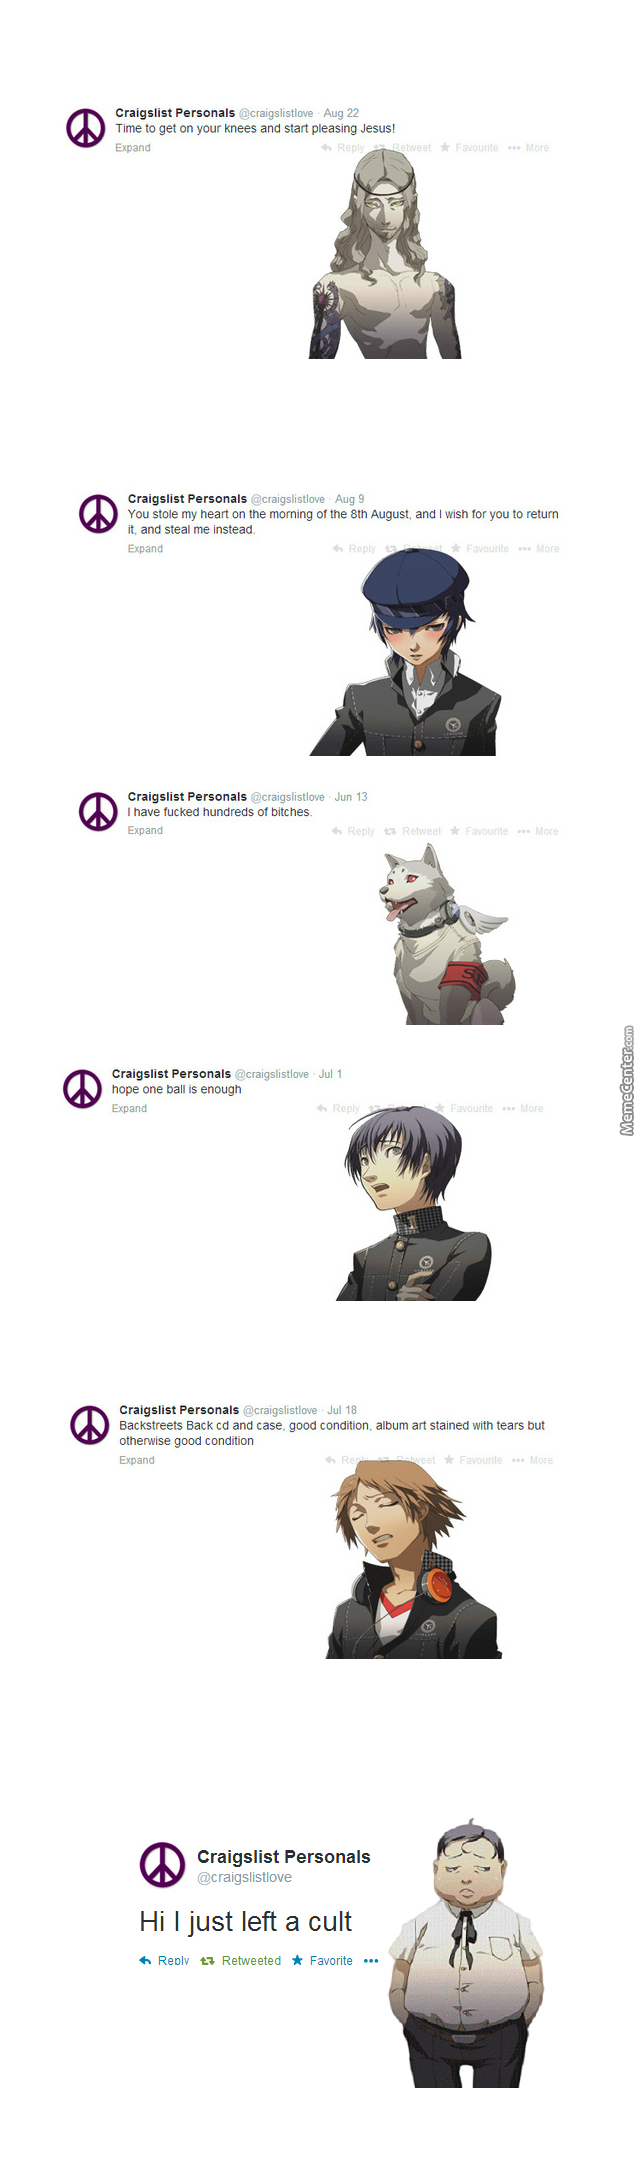 if persona characters used craigslist pt 3_o_3115763 if persona characters used craigslist (pt 3) by zaiyda meme center